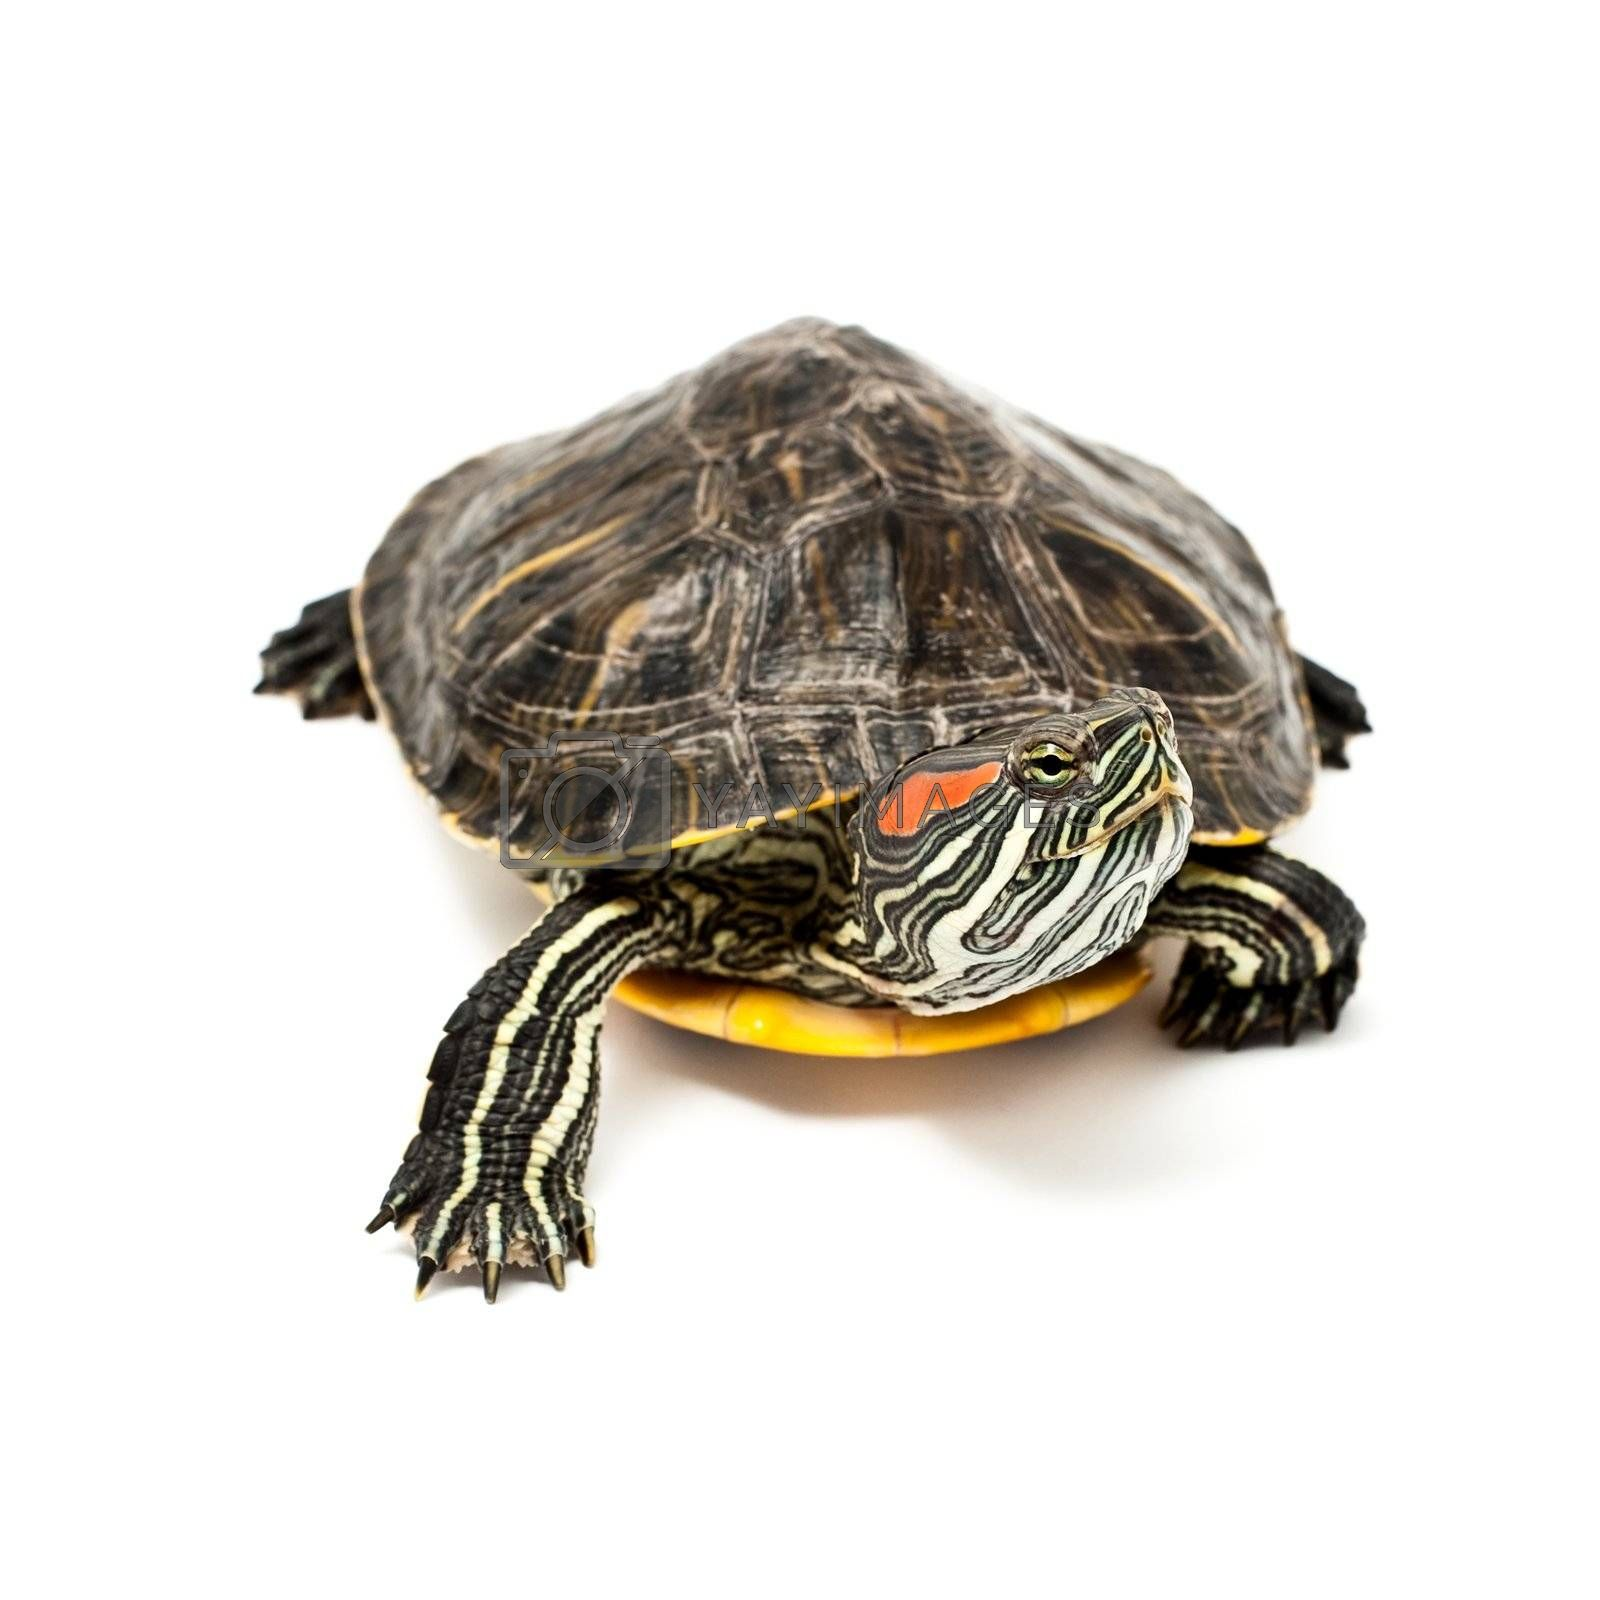 An image of turtle isolated on white